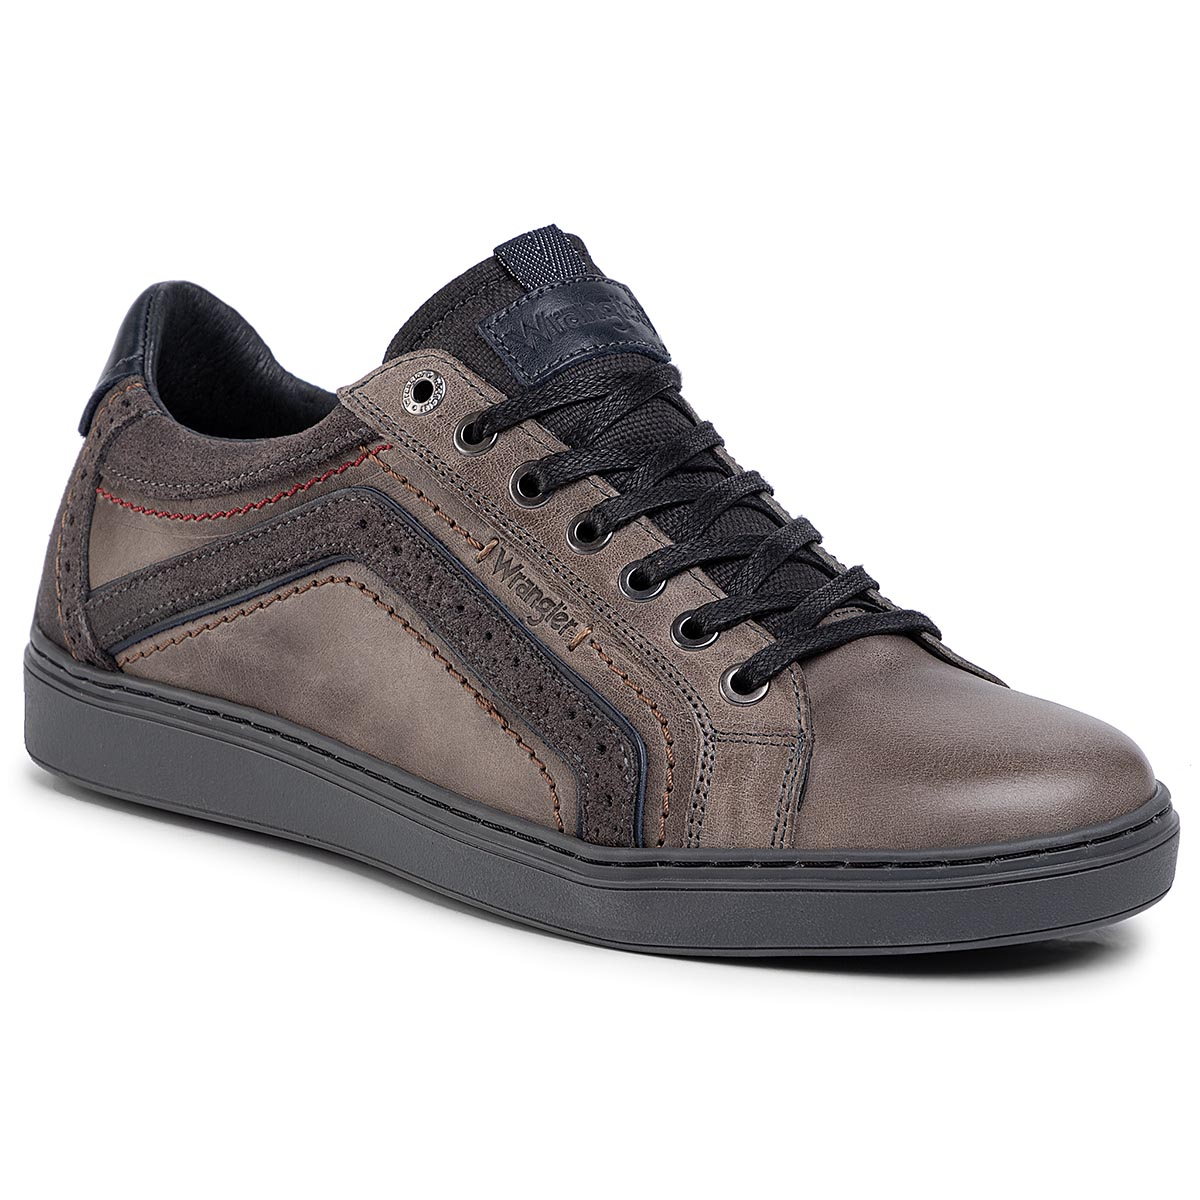 Sneakers WRANGLER - Owen Derby WM92090A Dk.Grey 56